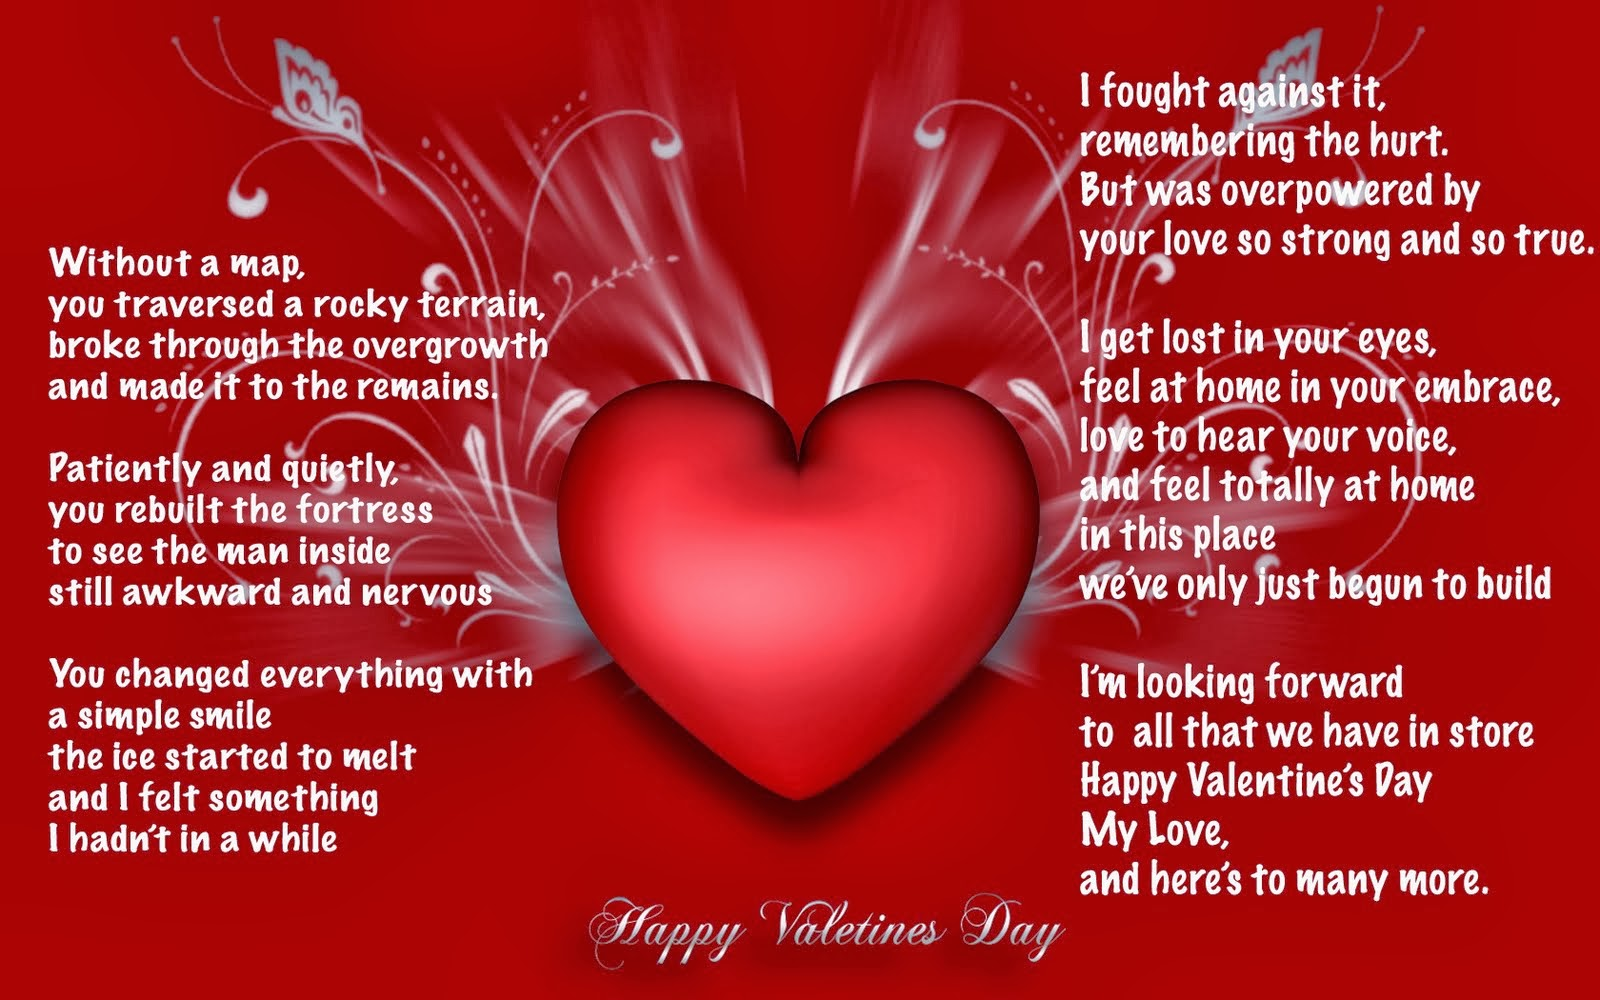 cute valentines day sayings - Cute Valentines Day Sayings For Friends